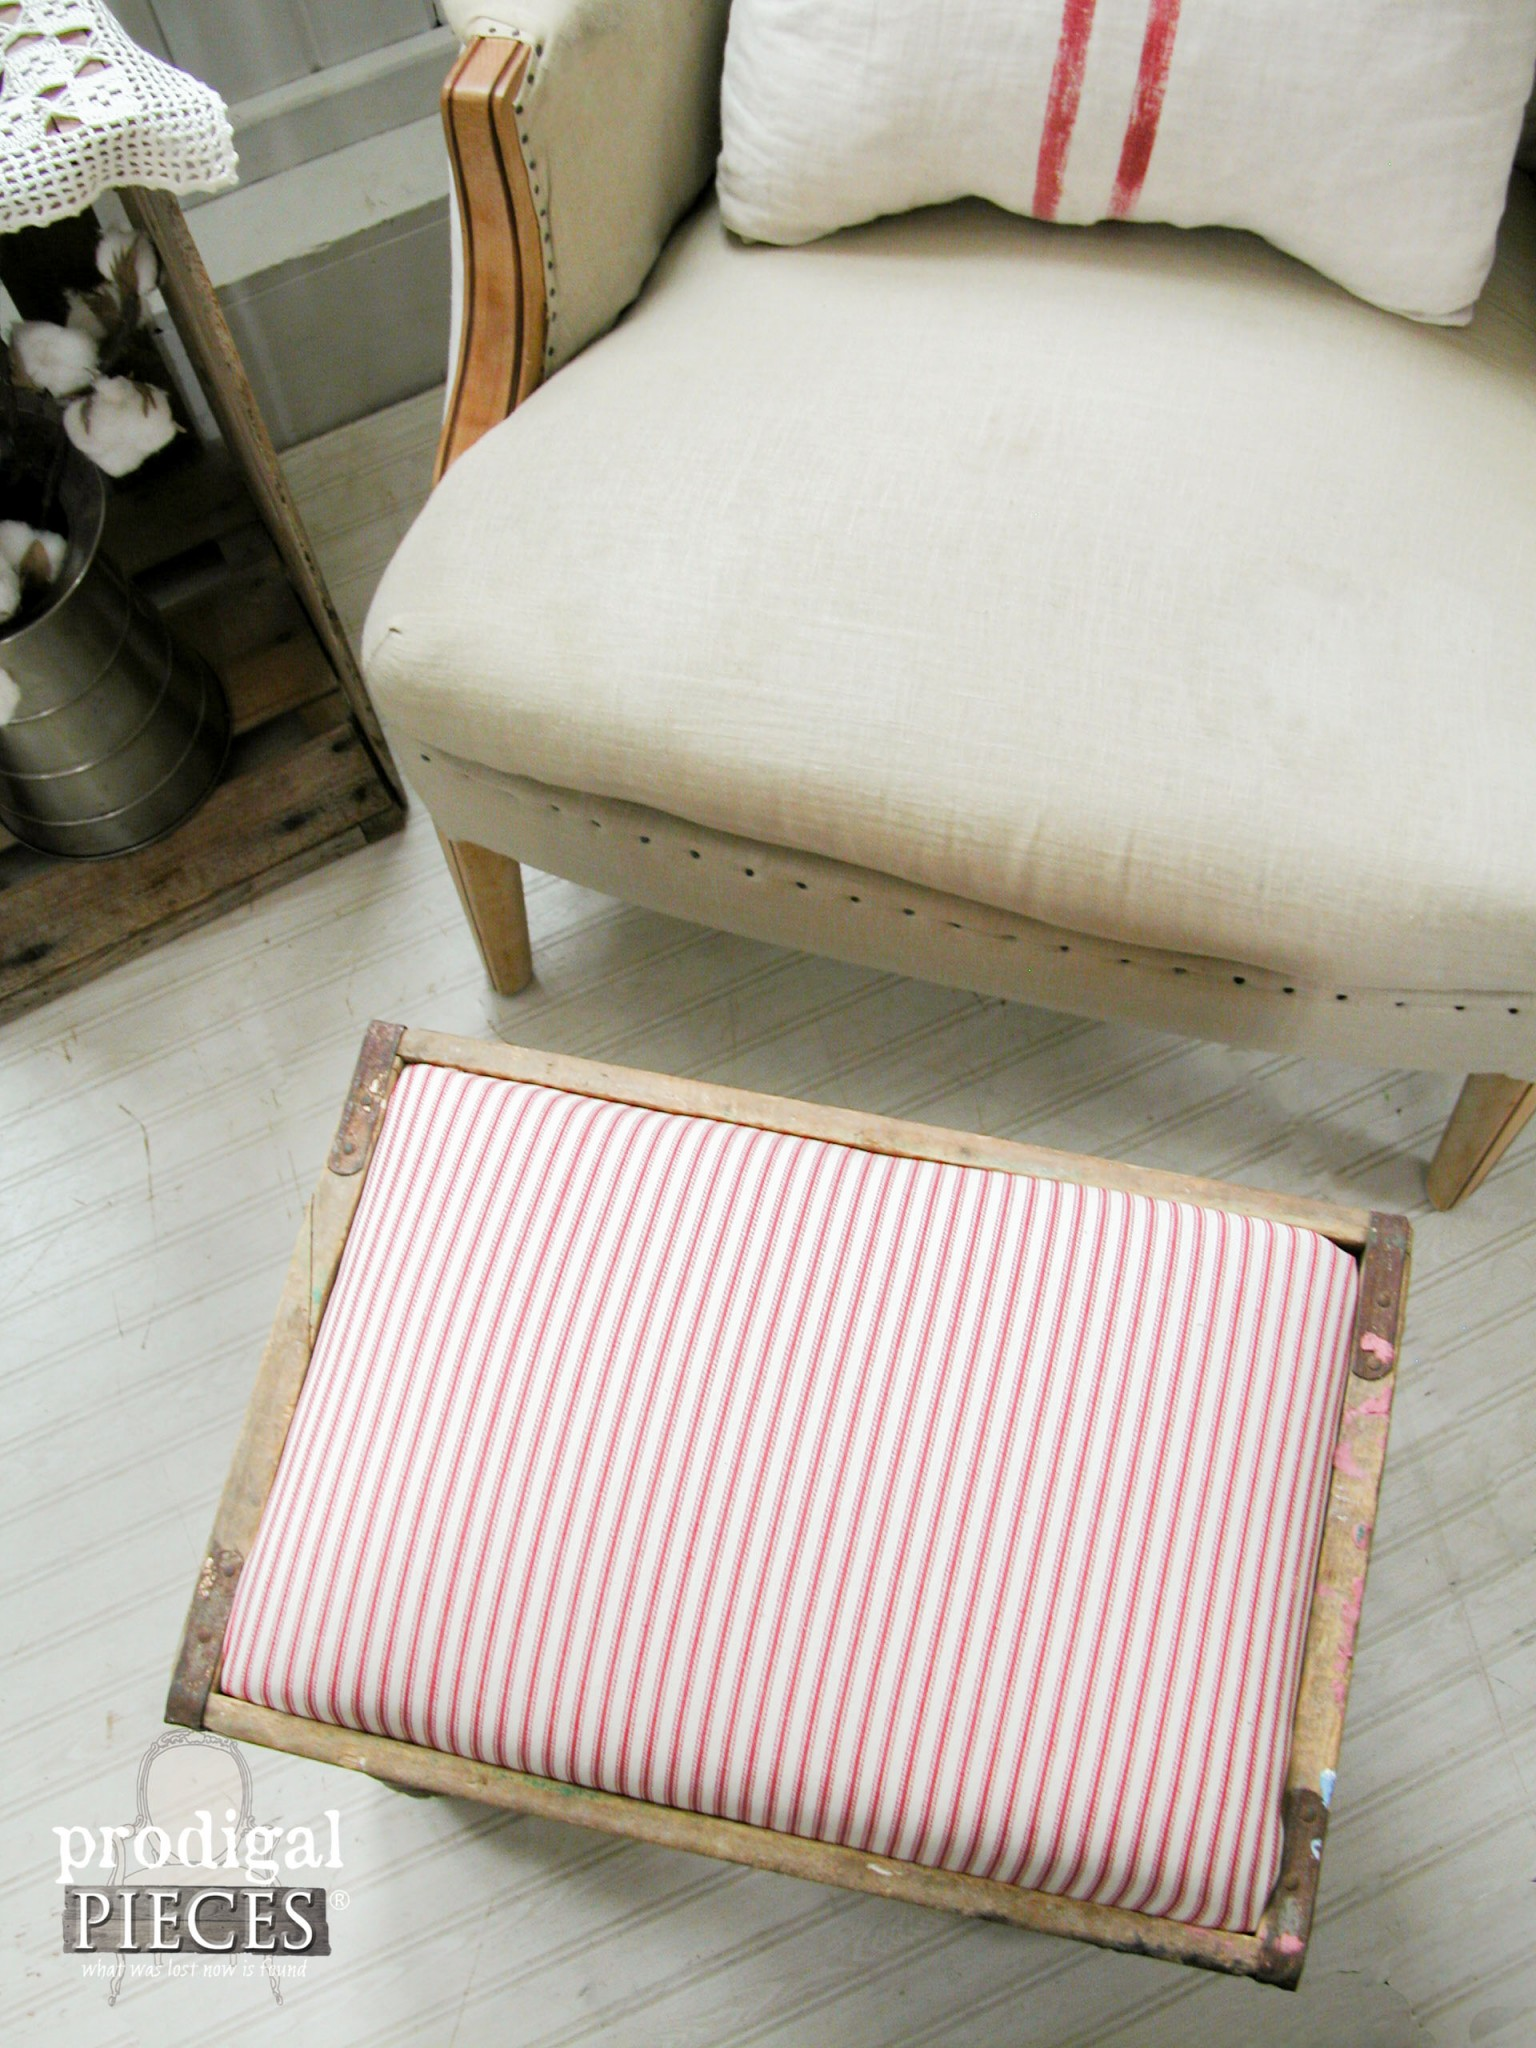 Red Ticking Upholstered Foot Stool by Prodigal Pieces | www.prodigalpieces.com